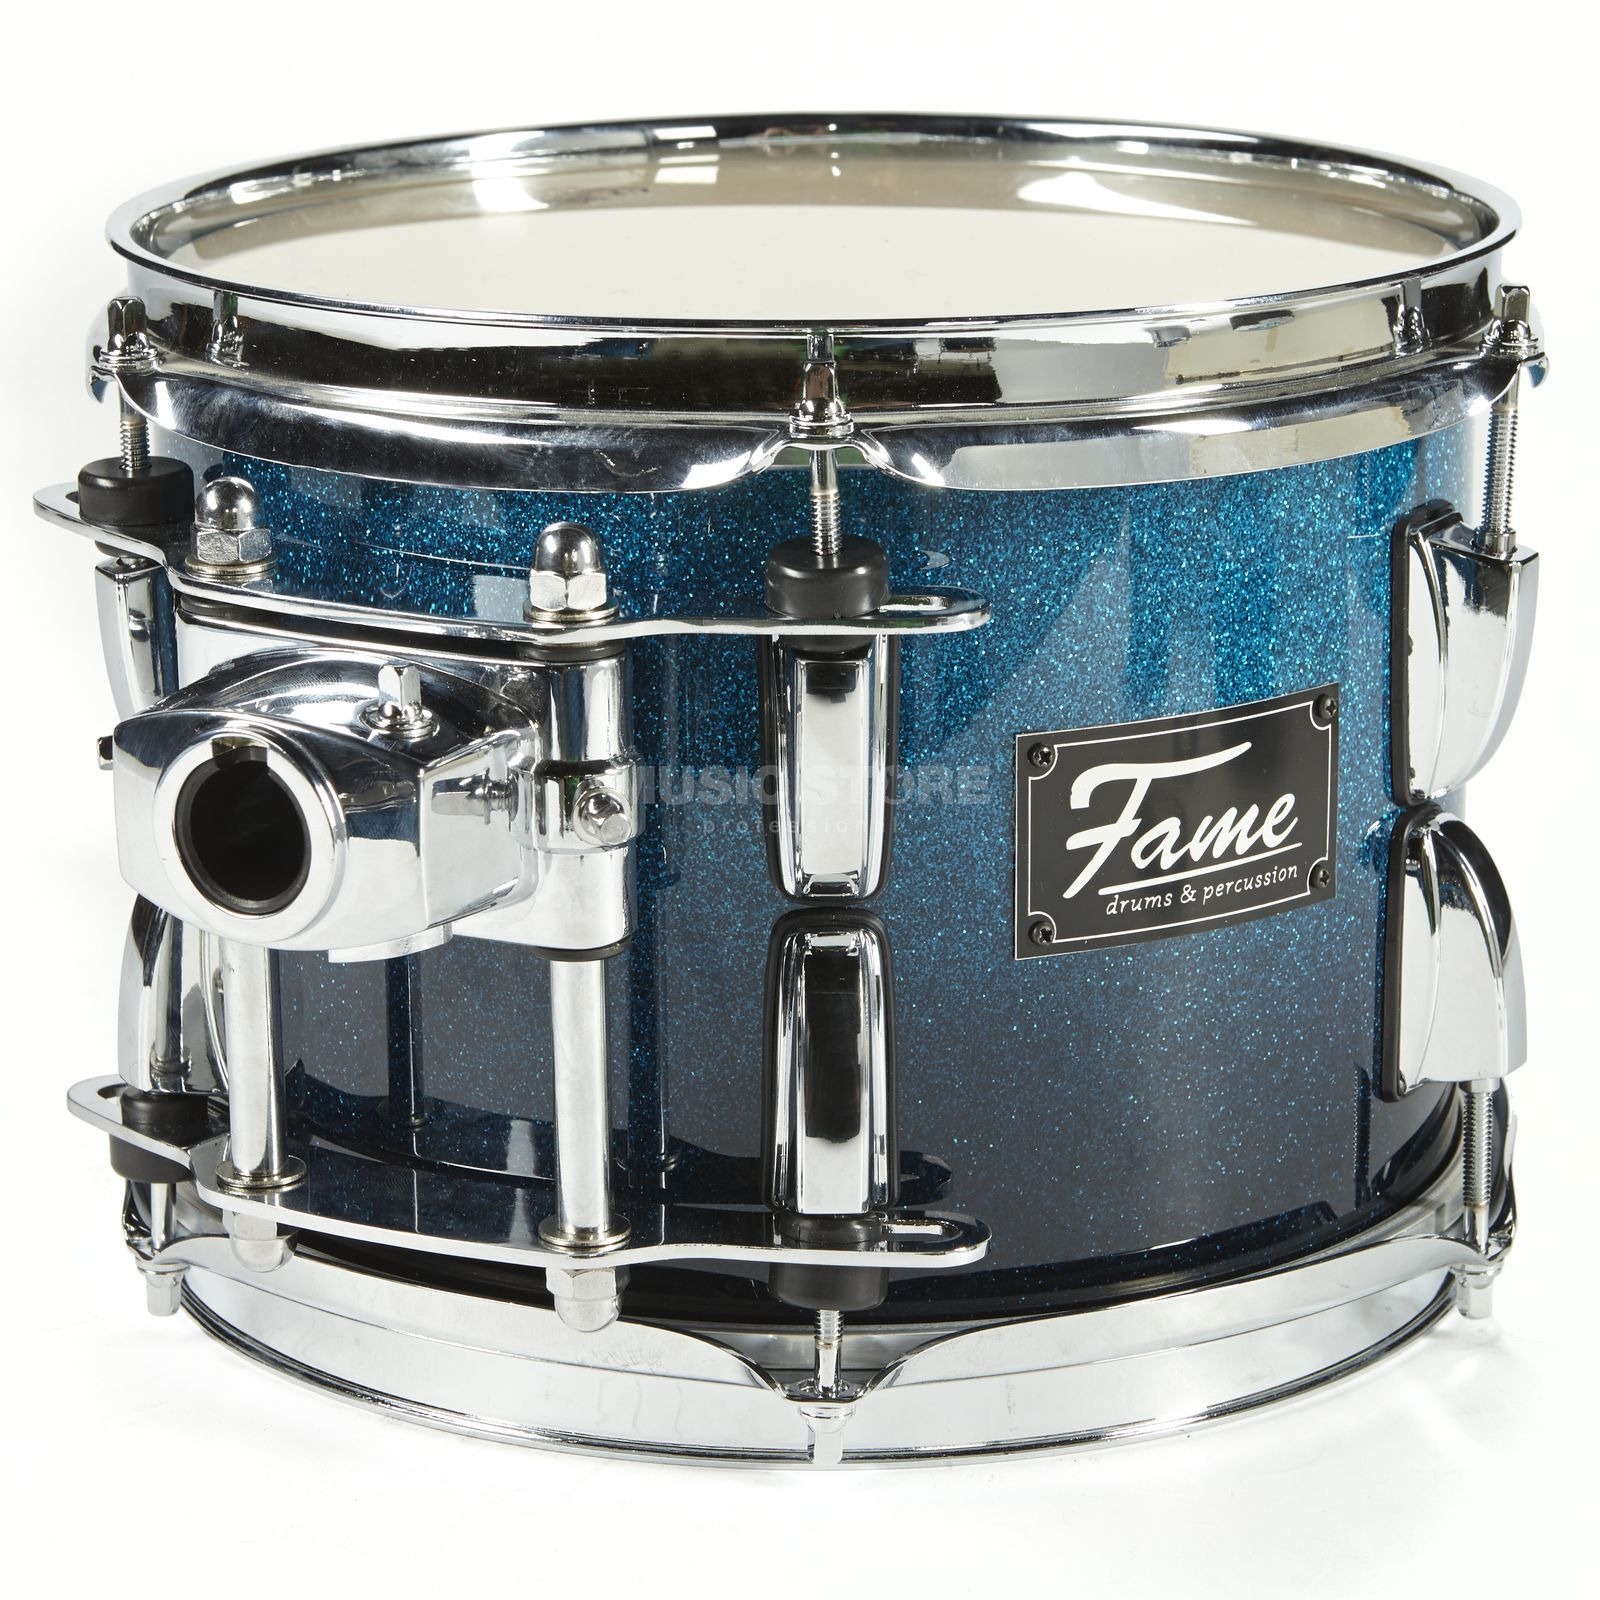 "Fame Fire Tom 13""x9"", #Blue Fade Sparkle Produktbild"